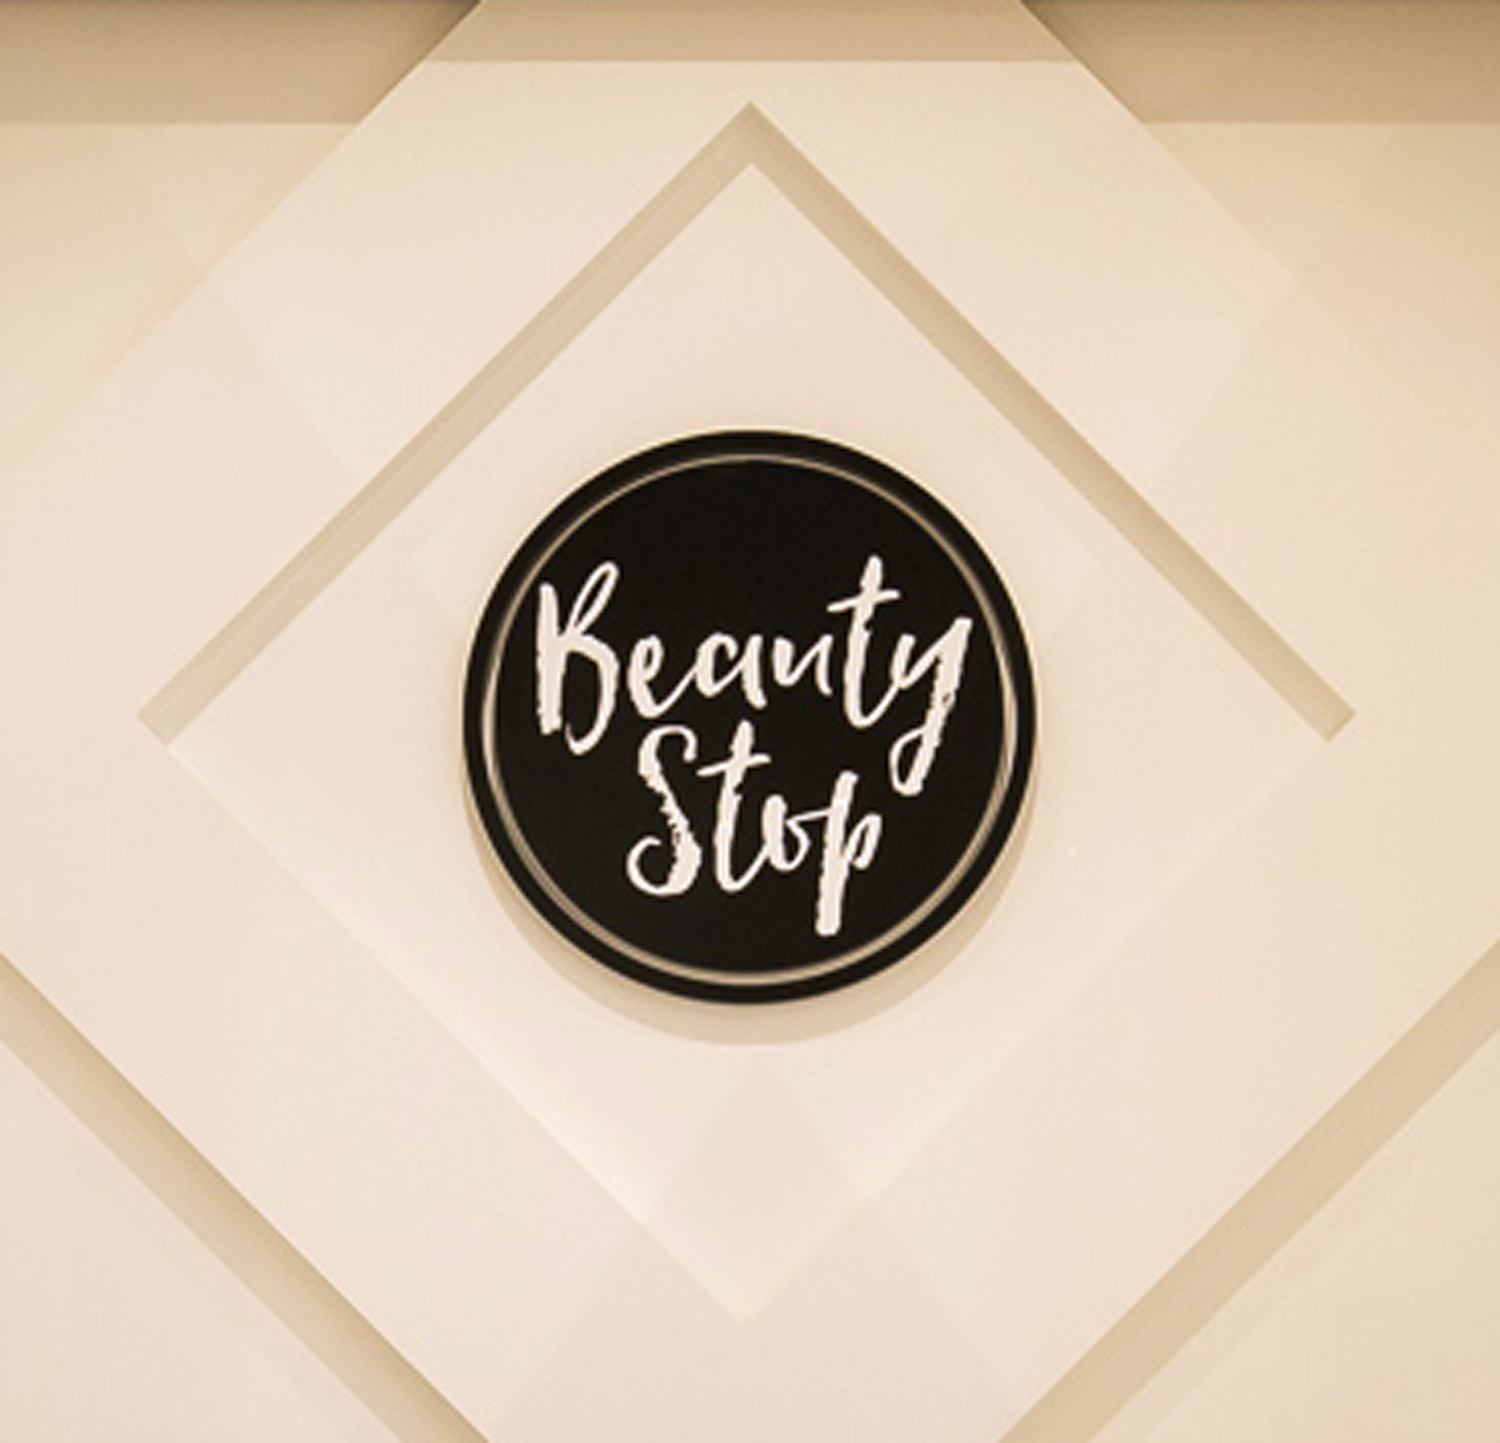 BeautyShopLogo